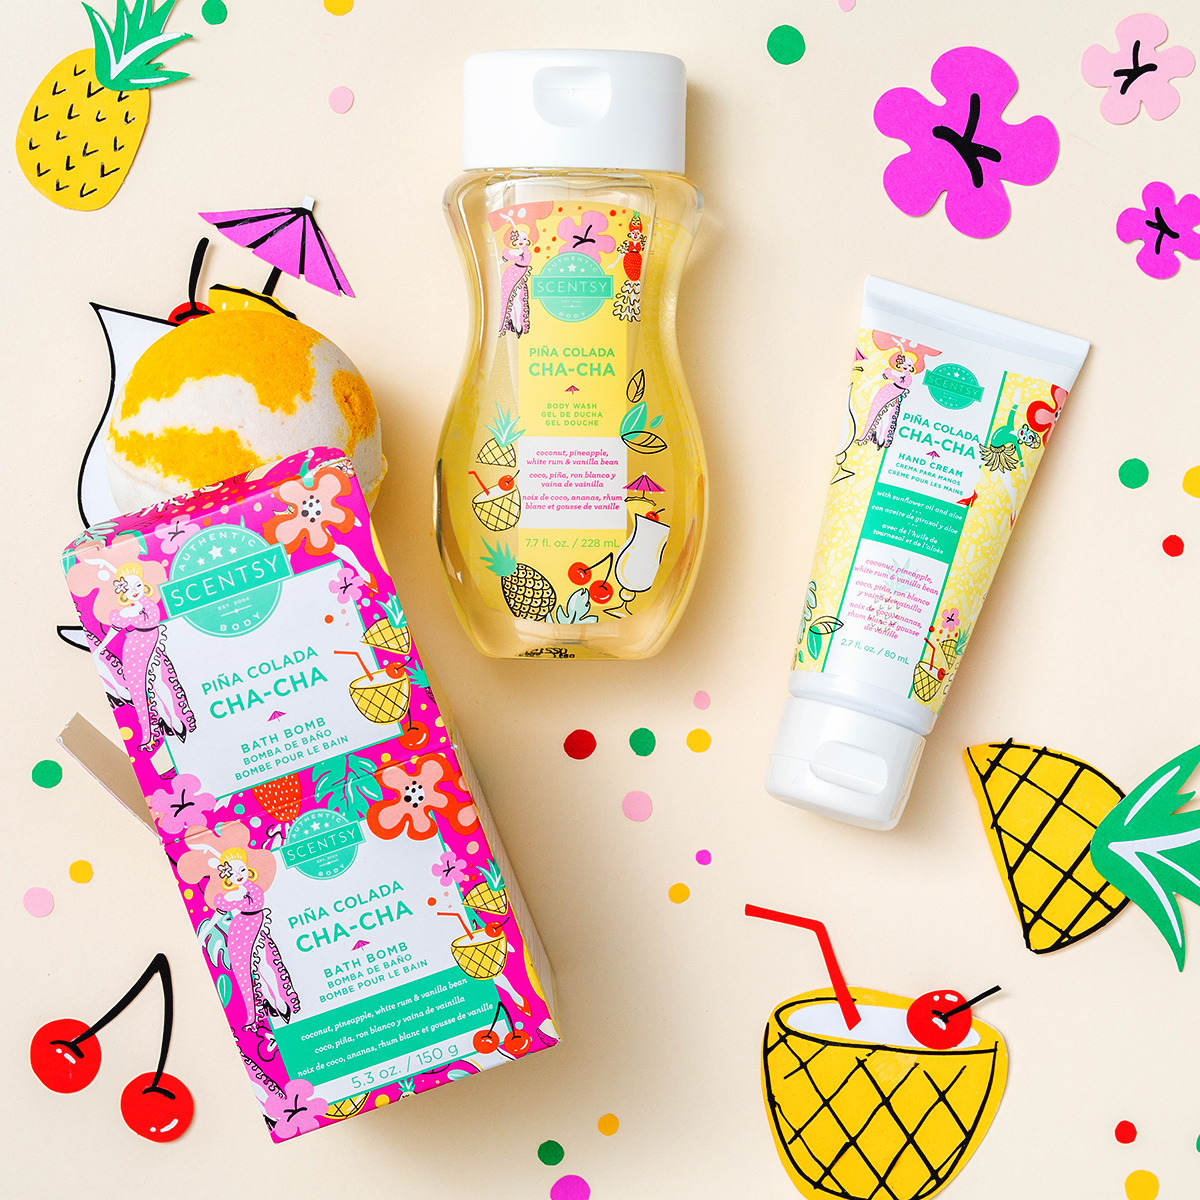 pina colada cha-cha spa bundle for mothers day scentsyjpg